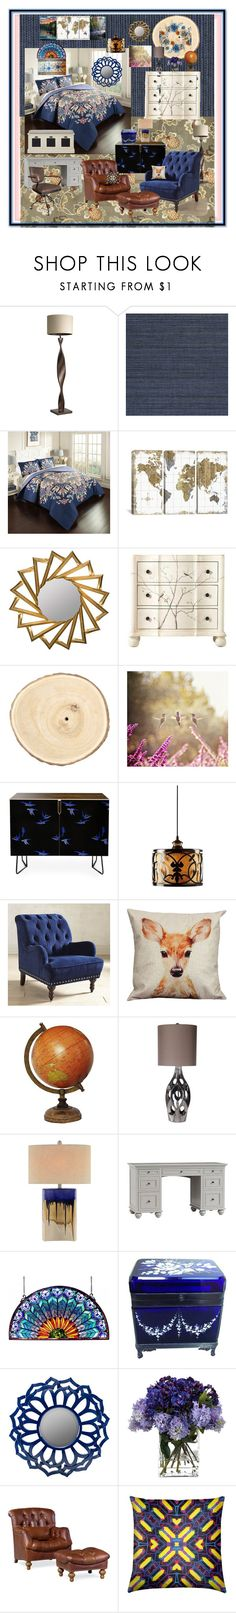 """Autumn Inspired Master Suite"" by aurorasblueheaven ❤ liked on Polyvore featuring interior, interiors, interior design, home, home decor, interior decorating, Home Decorators Collection, Pier 1 Imports, Élitis and Marble Hill"